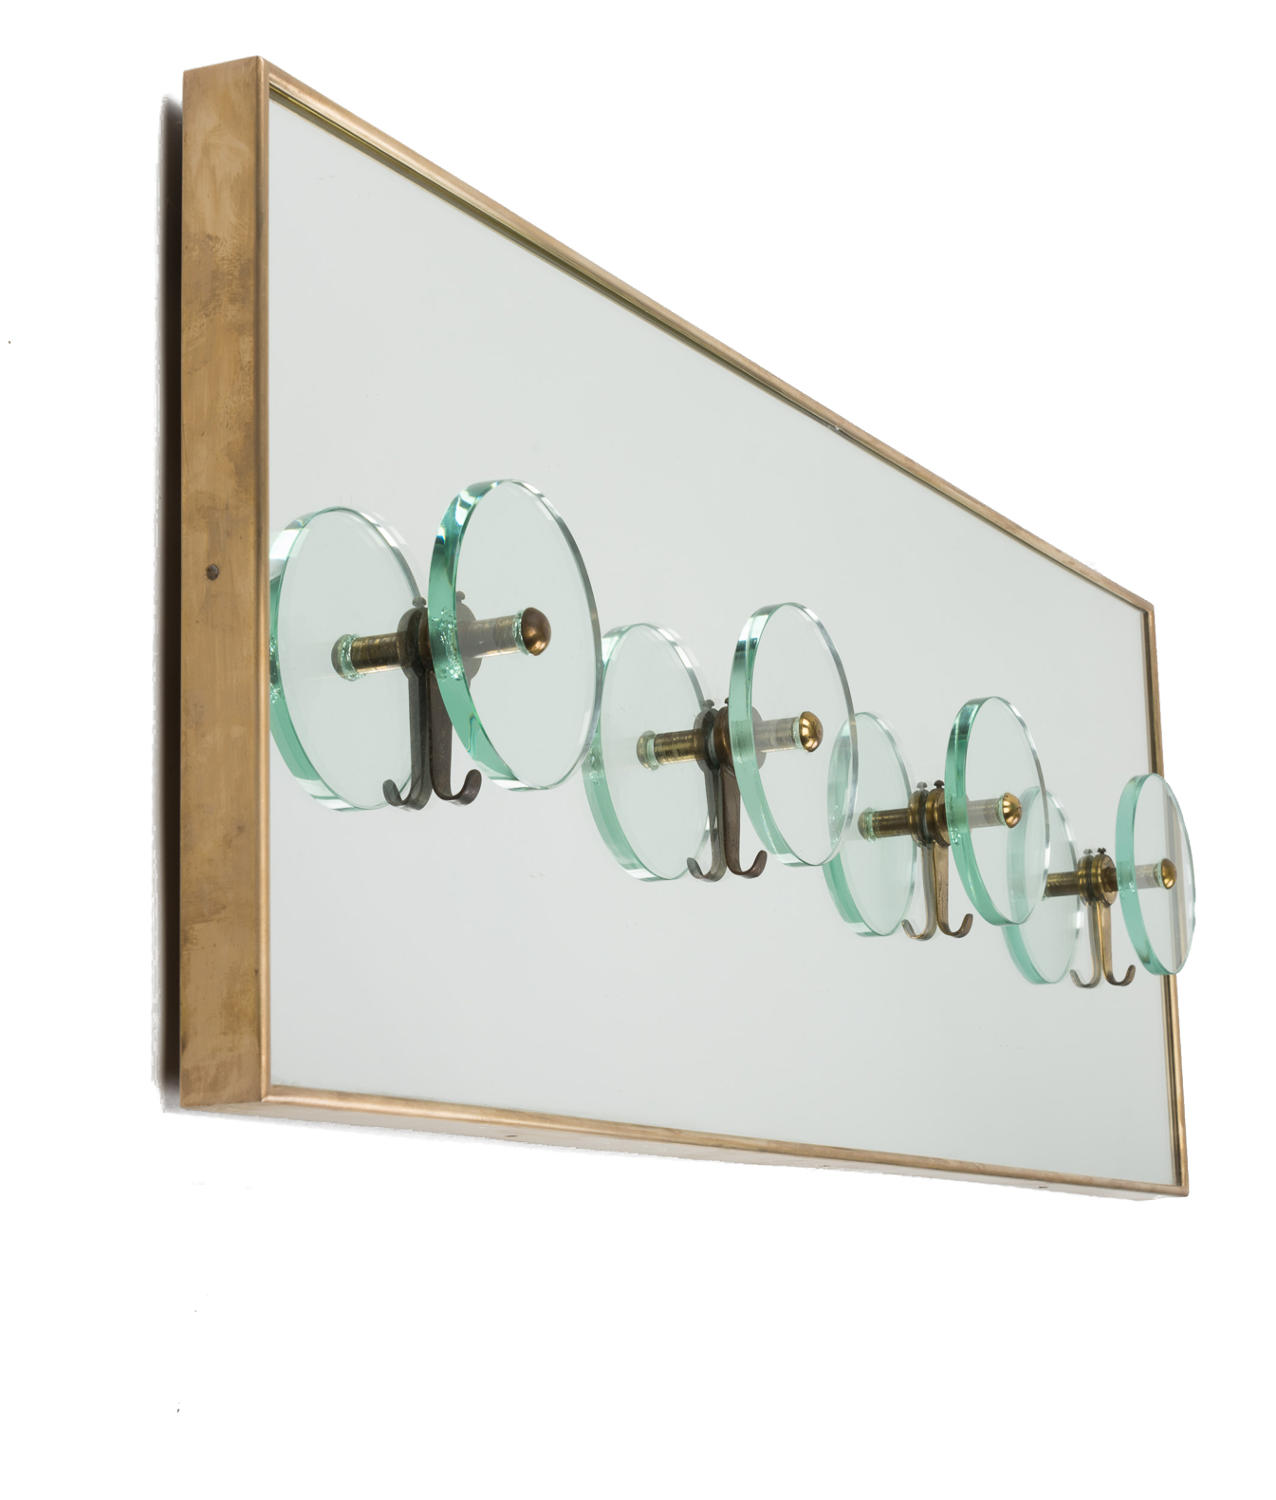 Mirrored Coat Rack